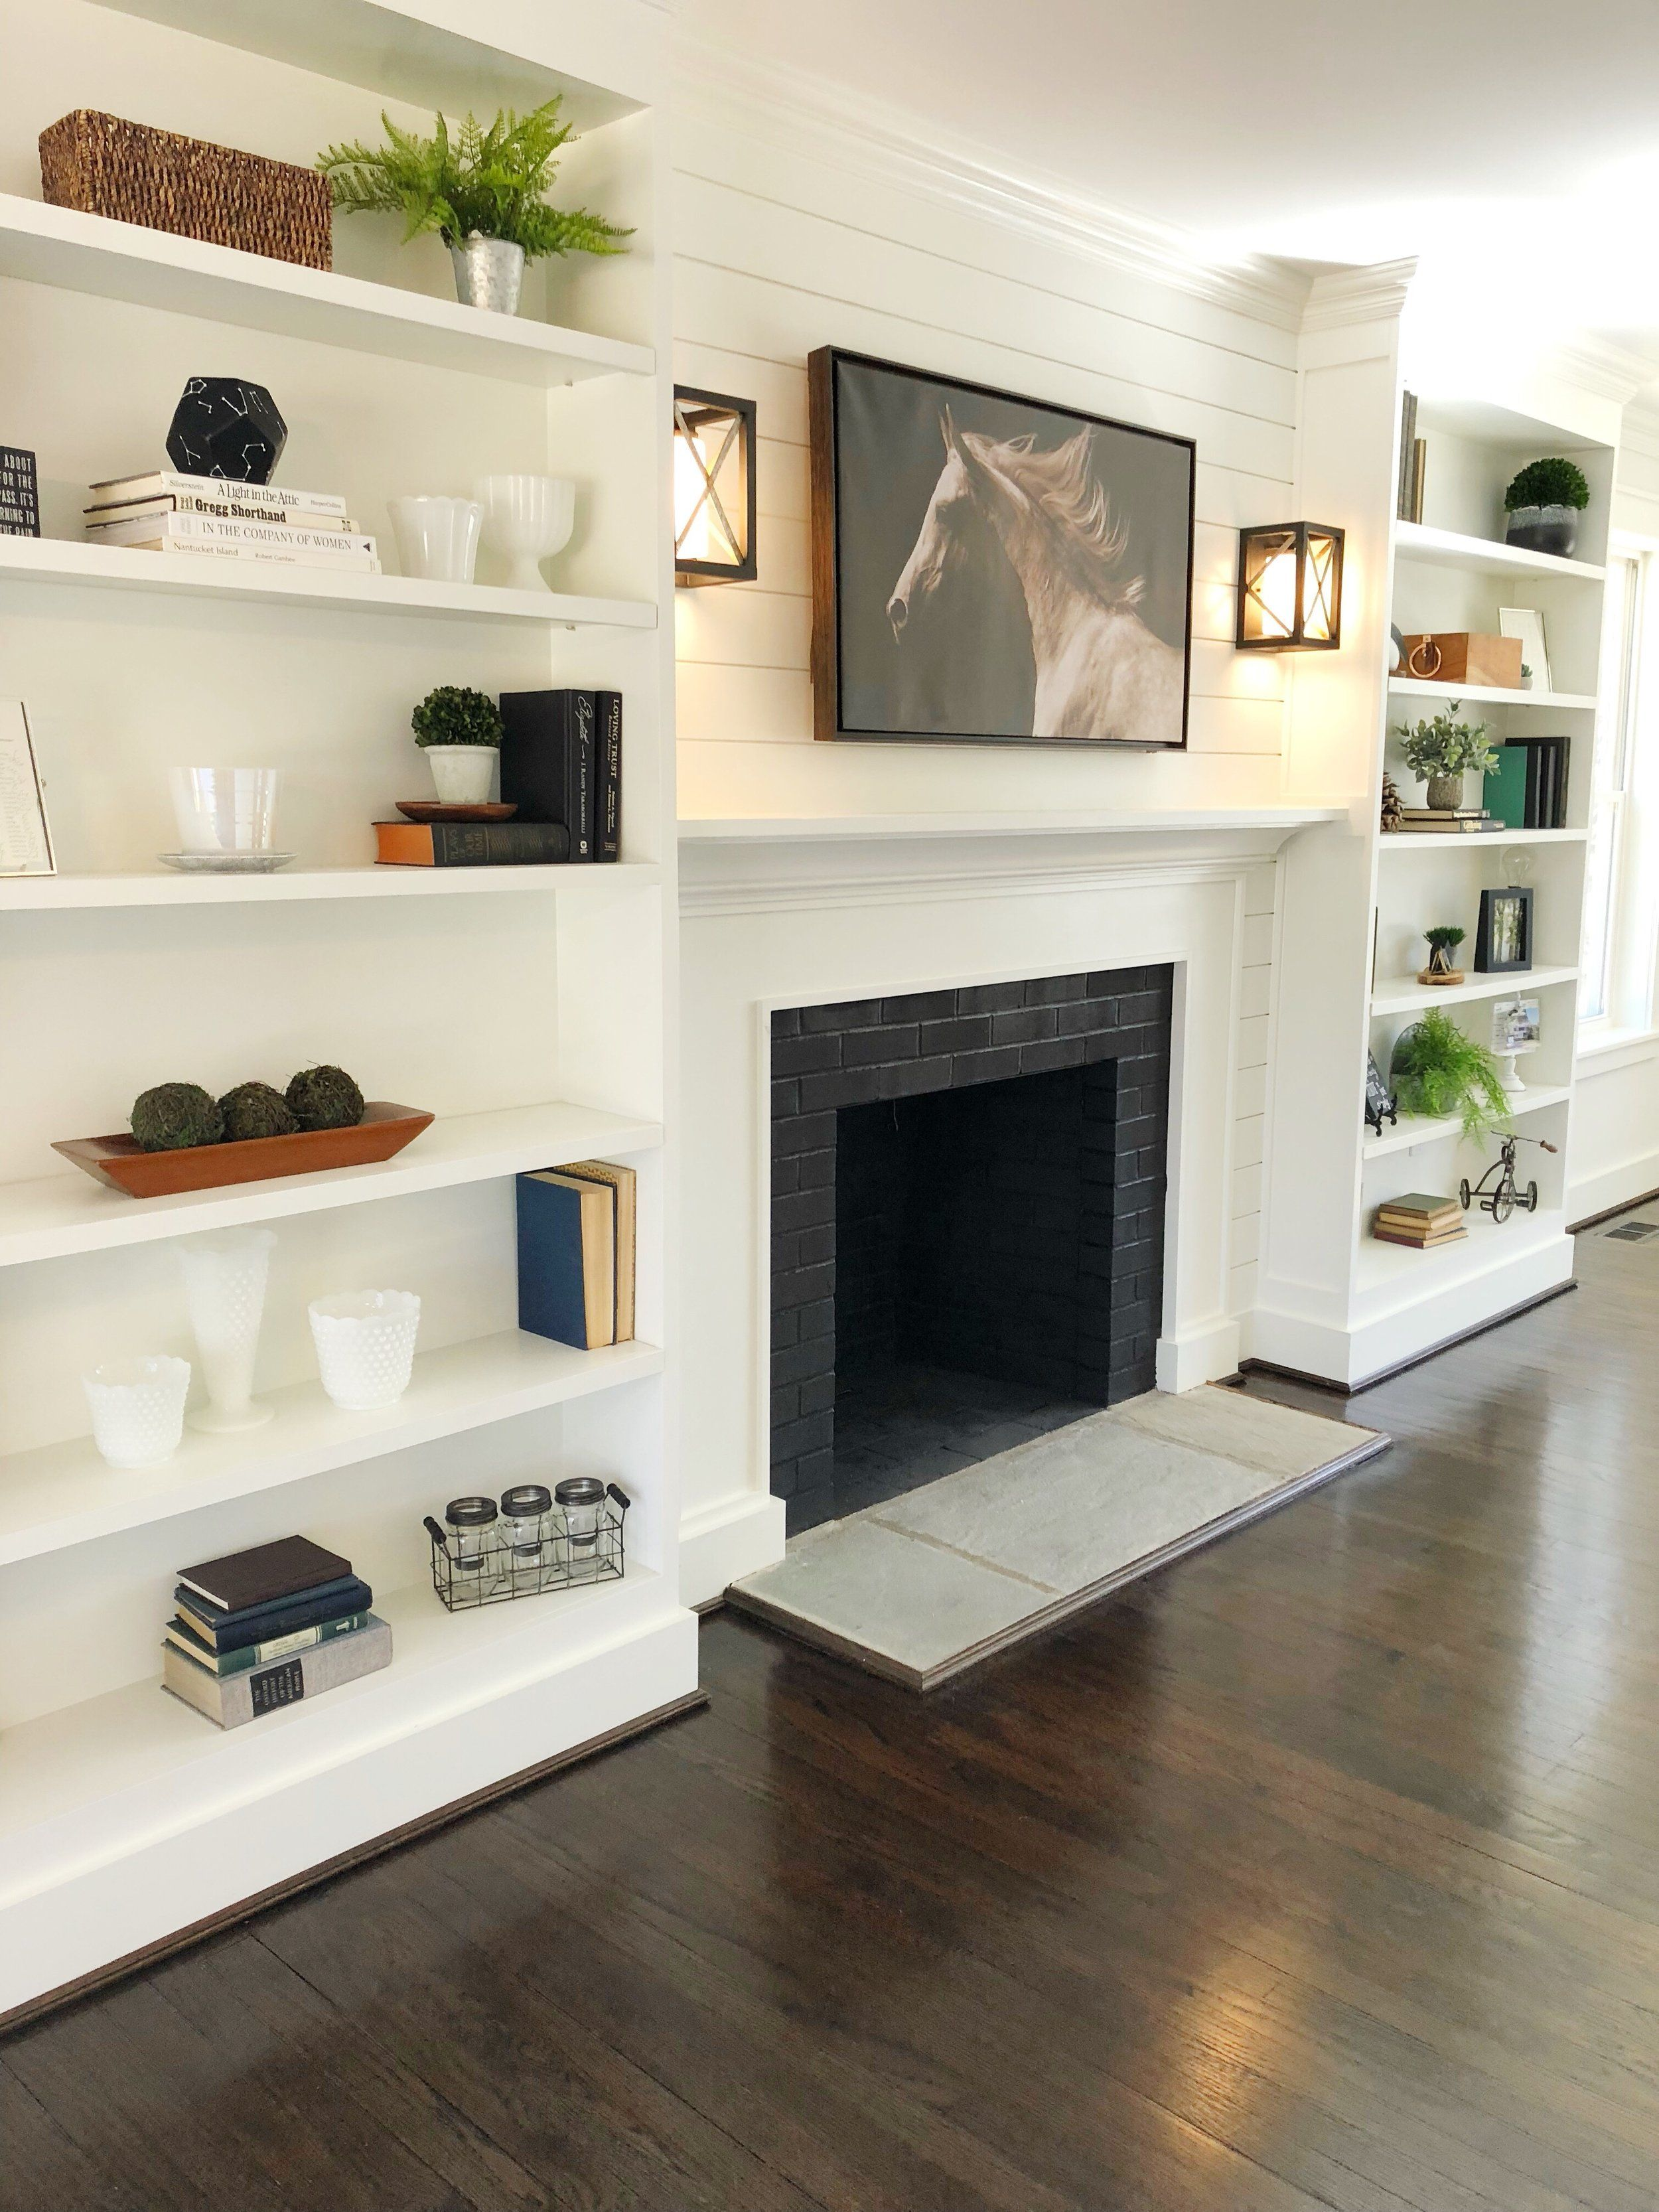 White Shiplap Mantle With Built Ins Designed And Built By Ana G Homes Llc Fairfi Built In Shelves Living Room Built In Around Fireplace Fireplace Built Ins